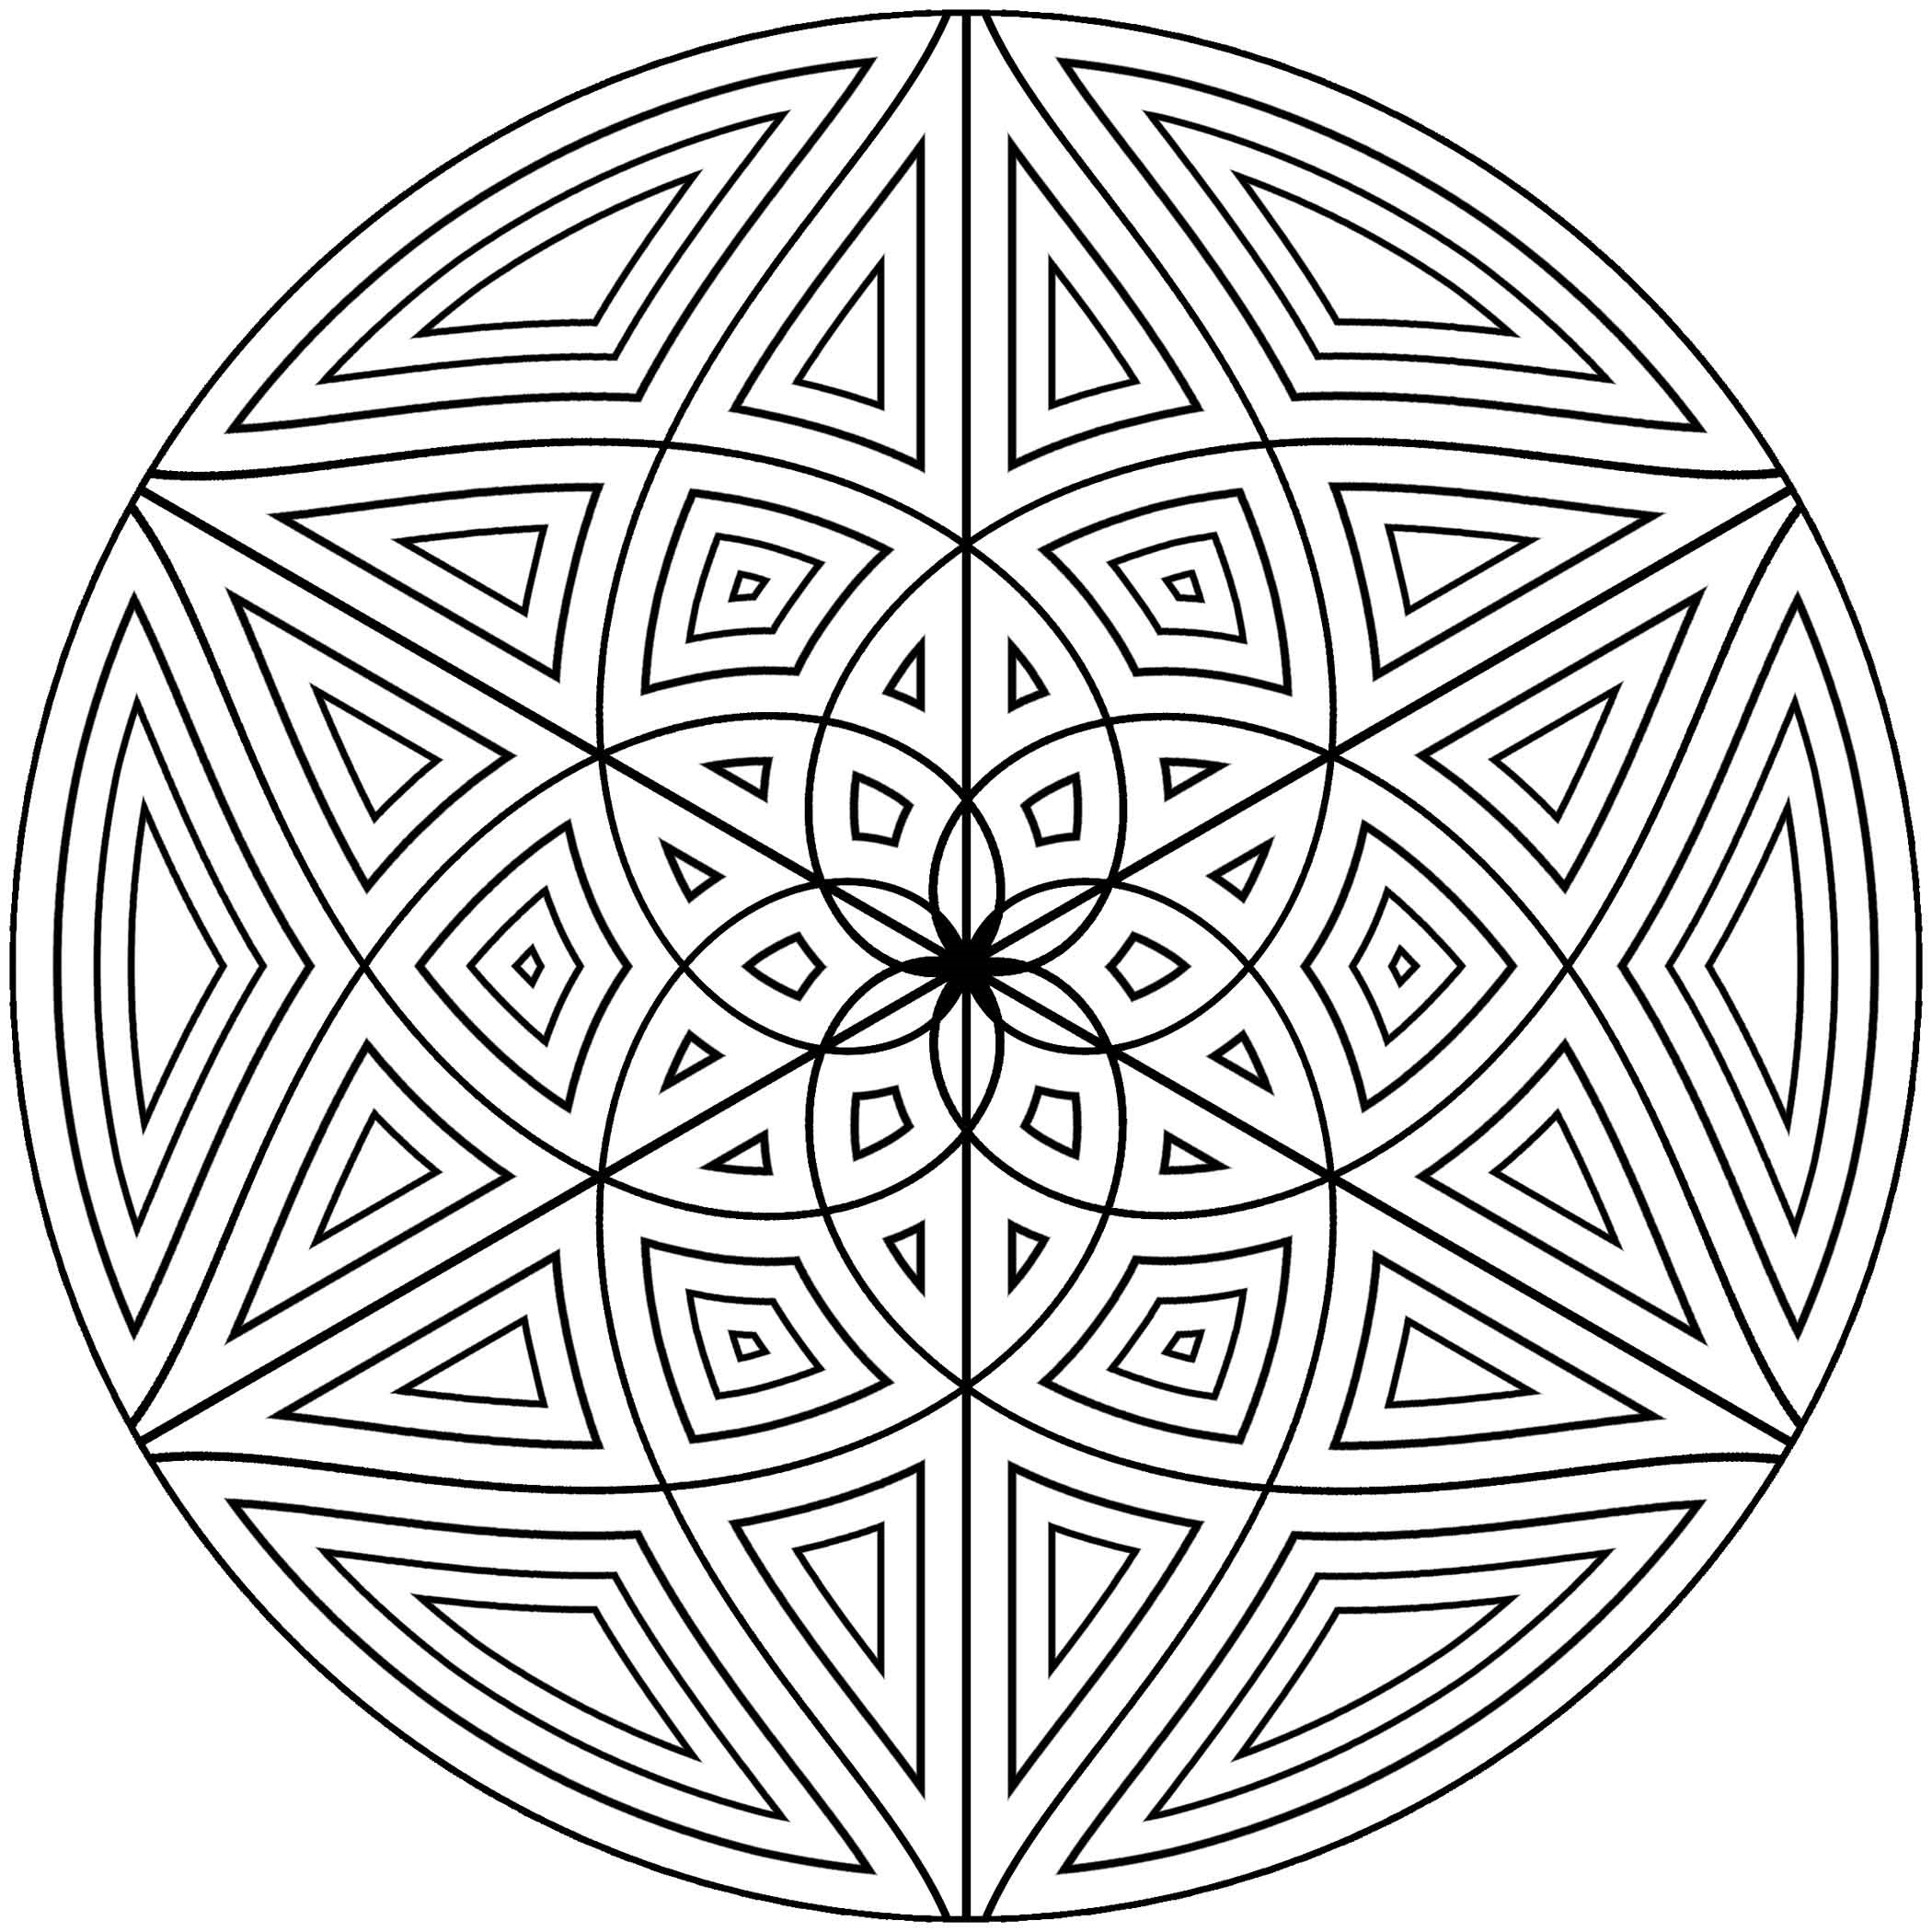 printable patterns to colour free printable geometric coloring pages for kids printable patterns colour to